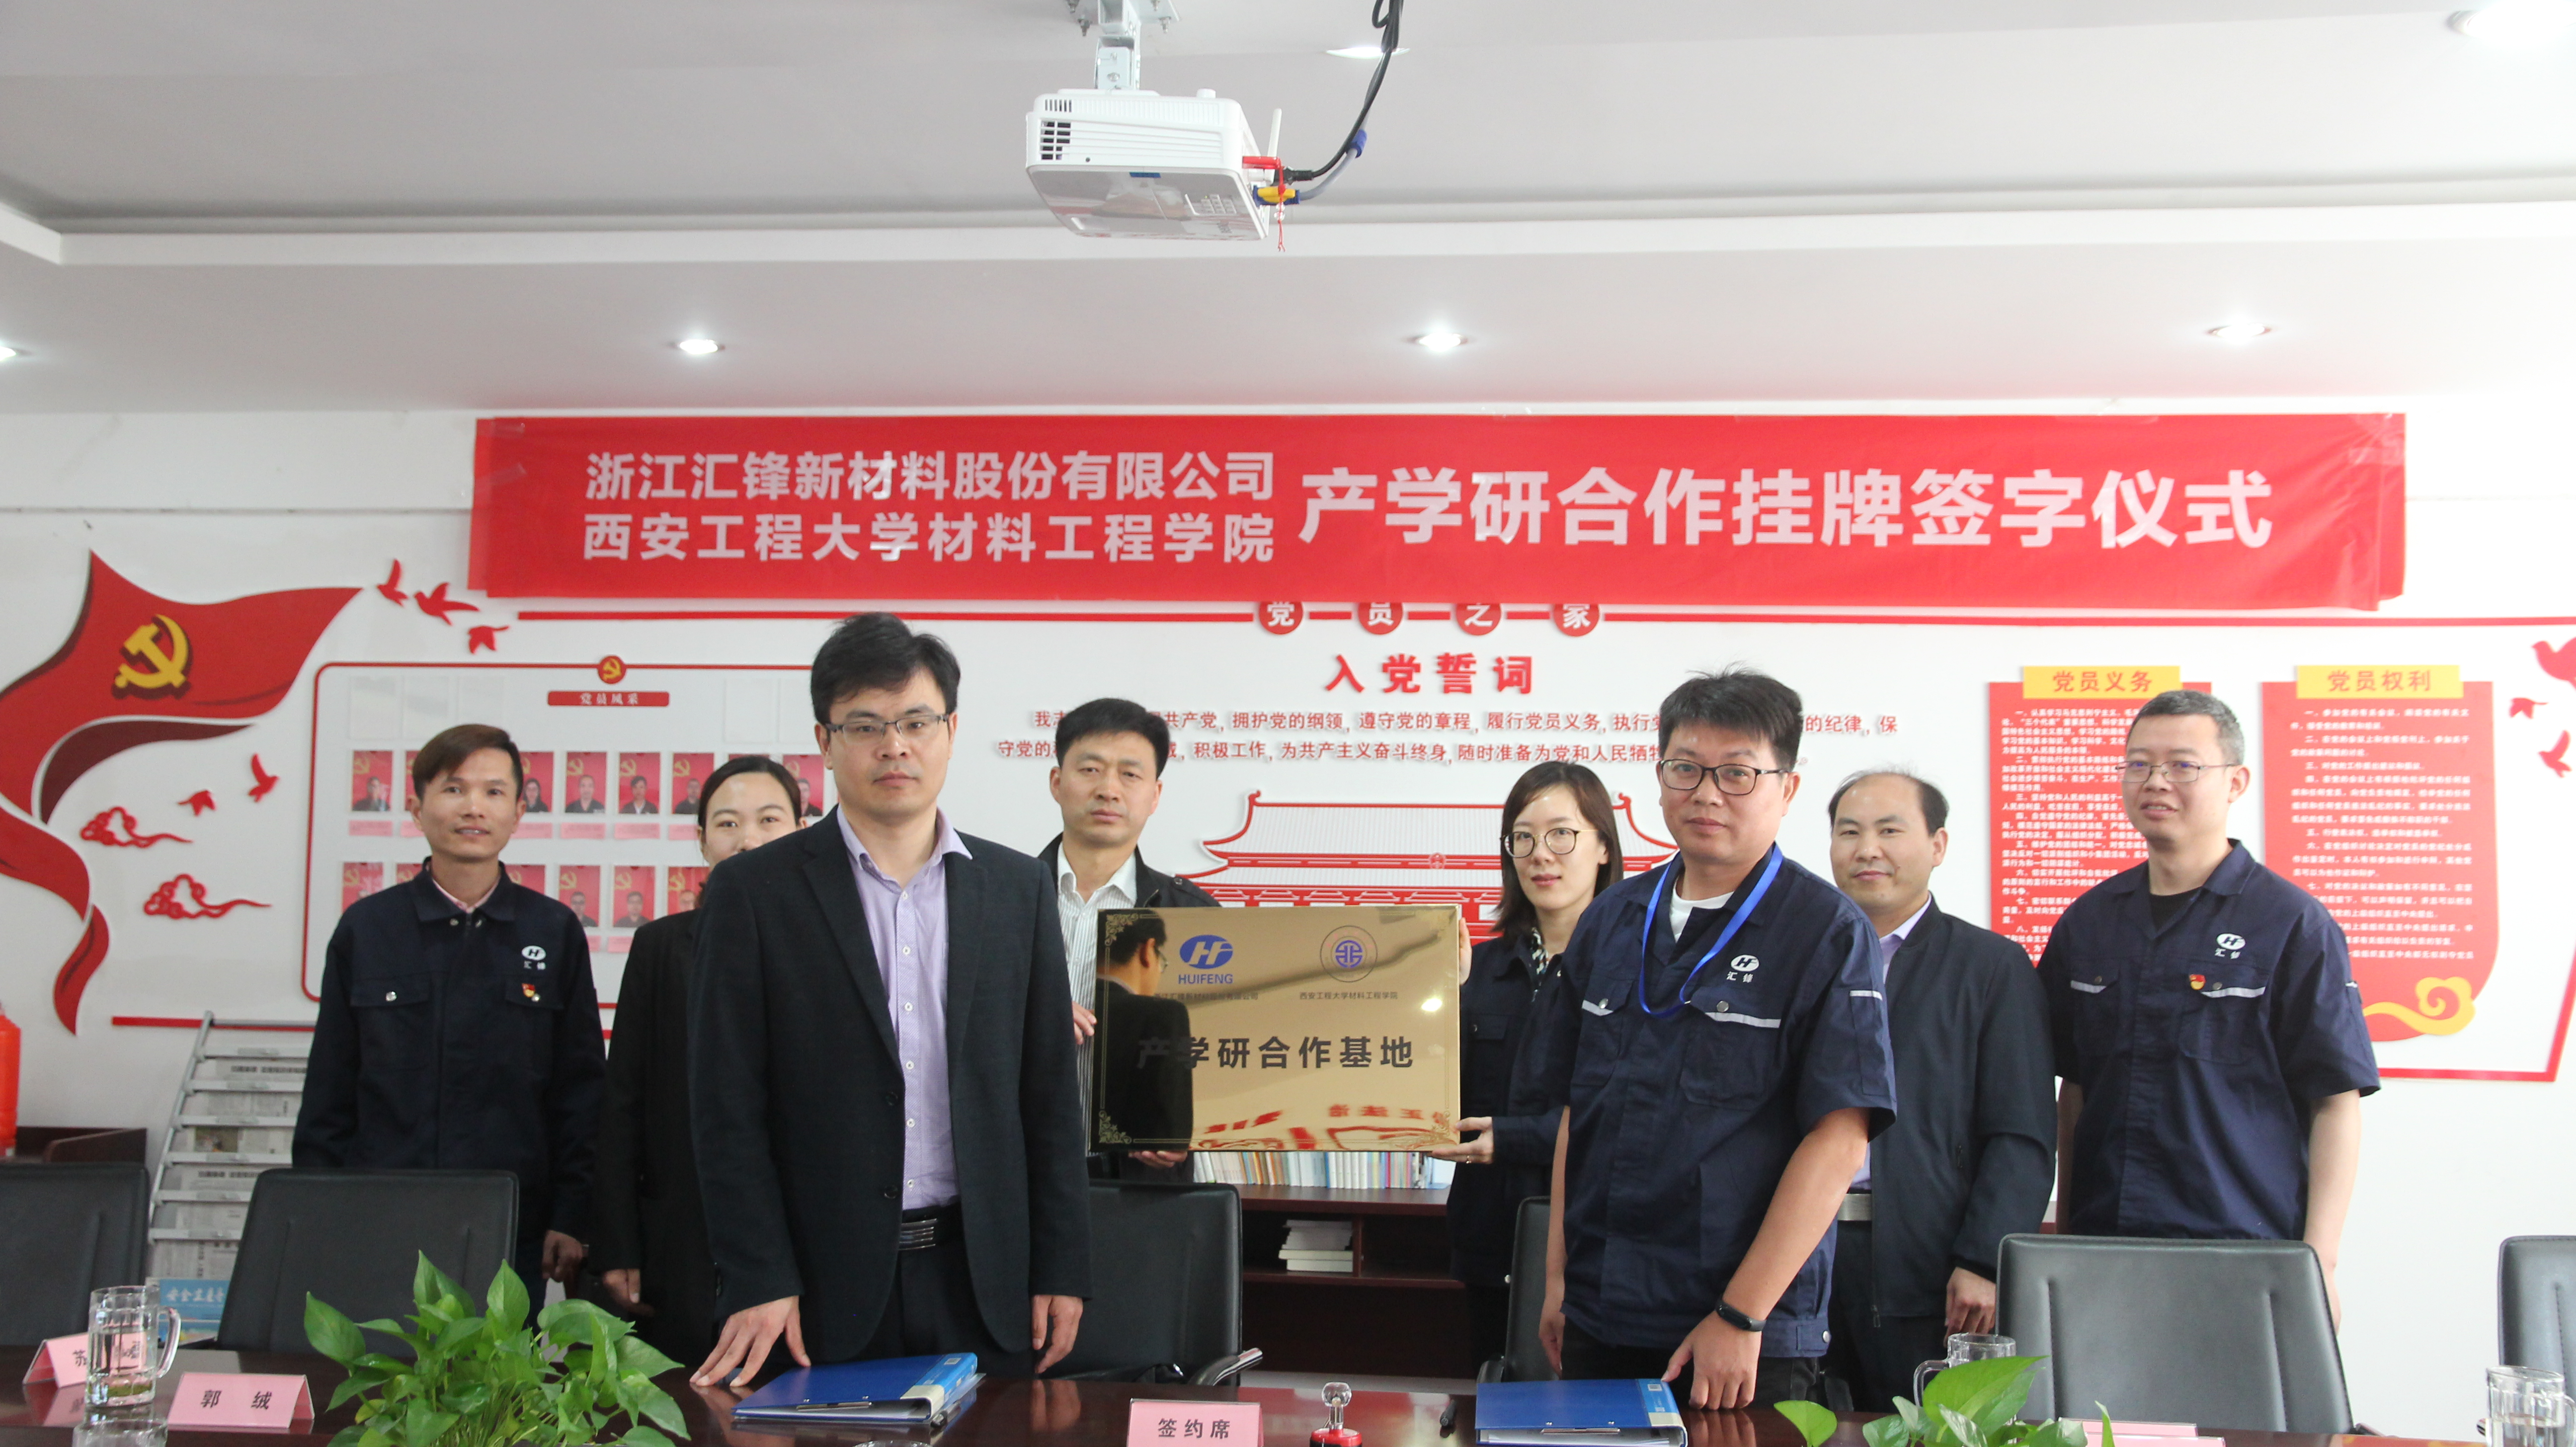 Huifeng&XiAn Polytechnic University Materials Engineering College Announced The R&D Cooperation Base